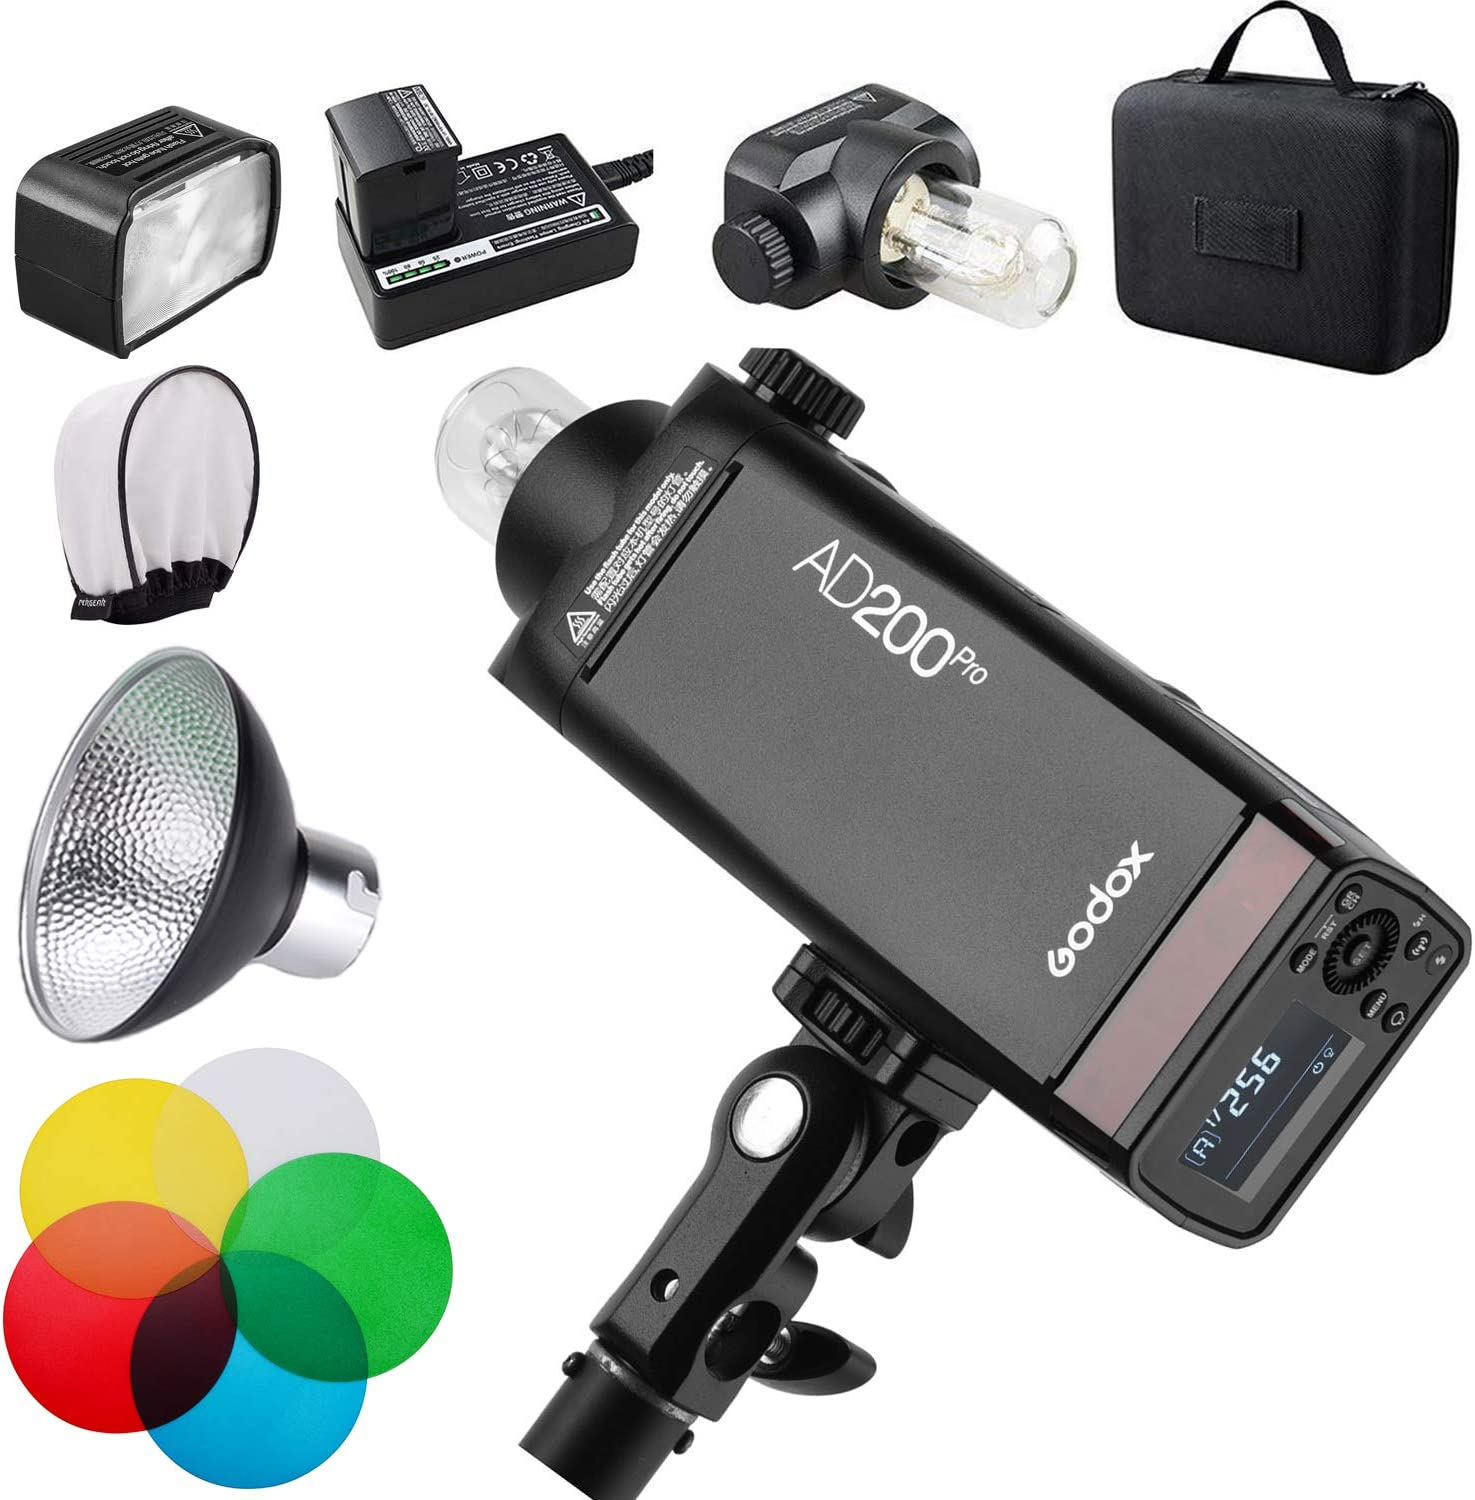 2900mAh Battery 500 Full Power Flashes 200Ws 2.4G Flash Strobe Lightweight Godox AD200Pro AD200 Pro with PERGEAR Diffuser 0.01-2.1s Recycling 1//8000 HSS Bare Bulb//Speedlite Fresnel Flash Head